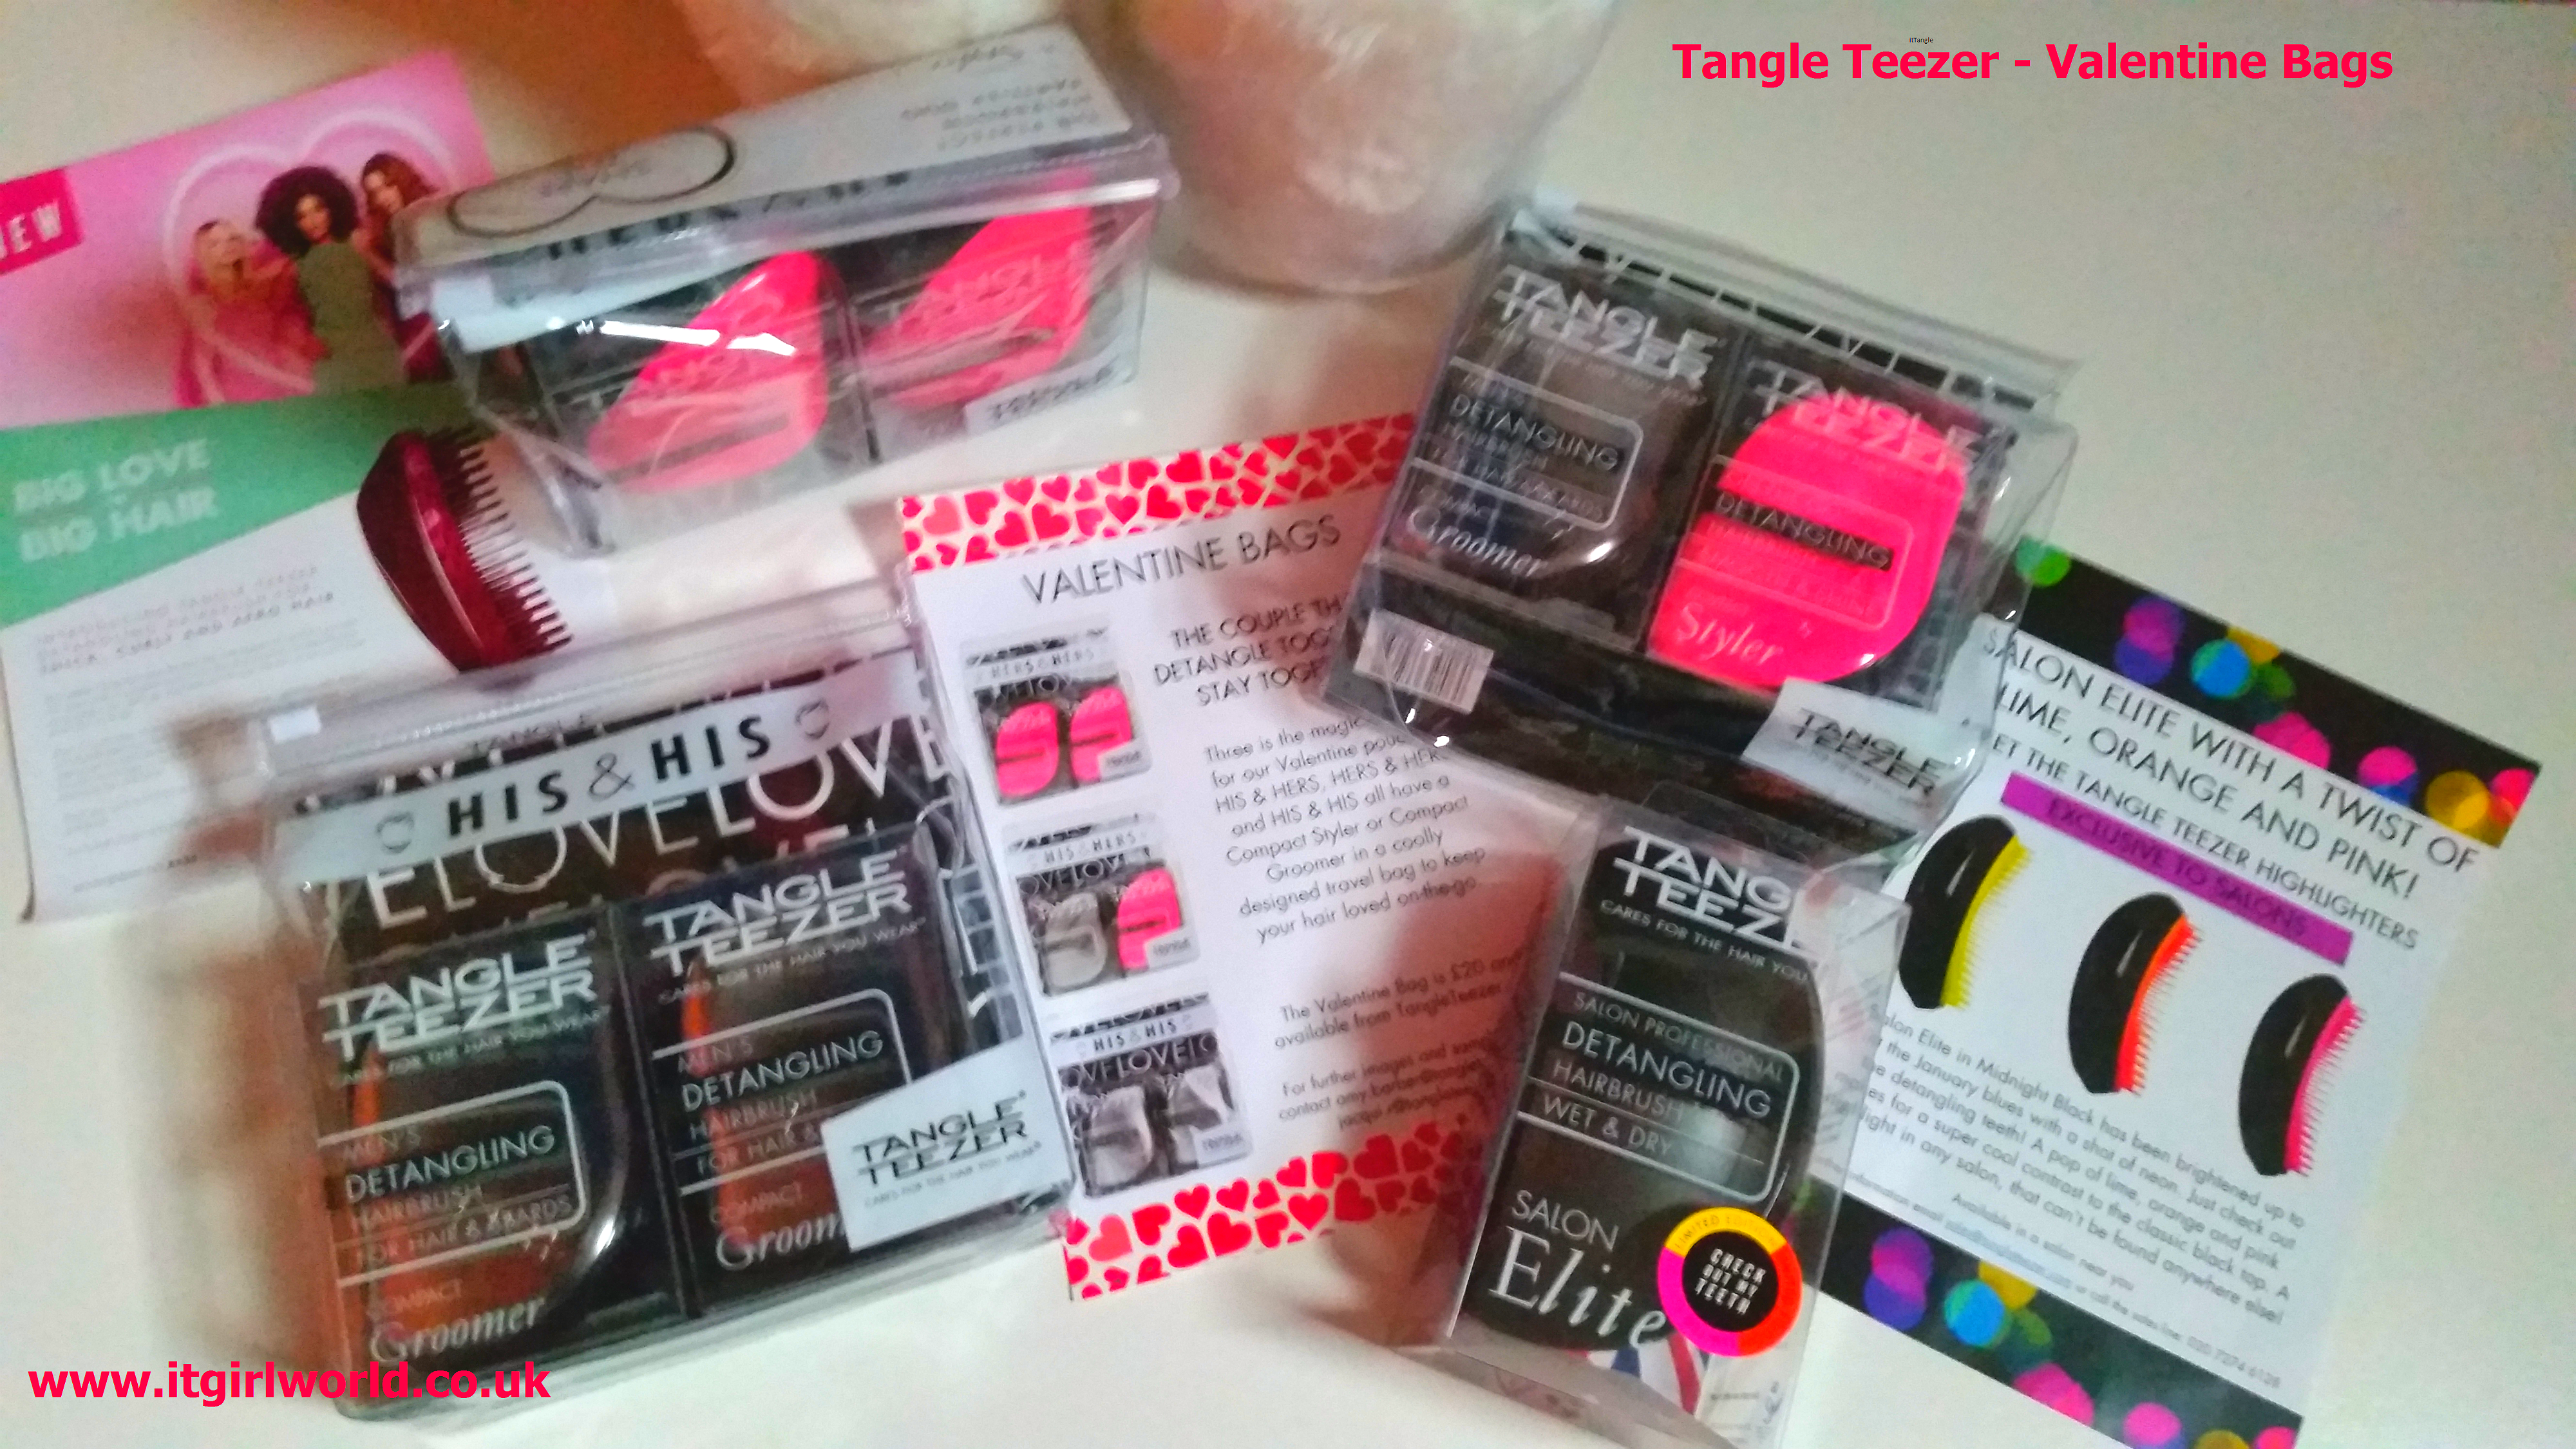 Get Loved Up with the New Tangle Teezer Valentine Bag!